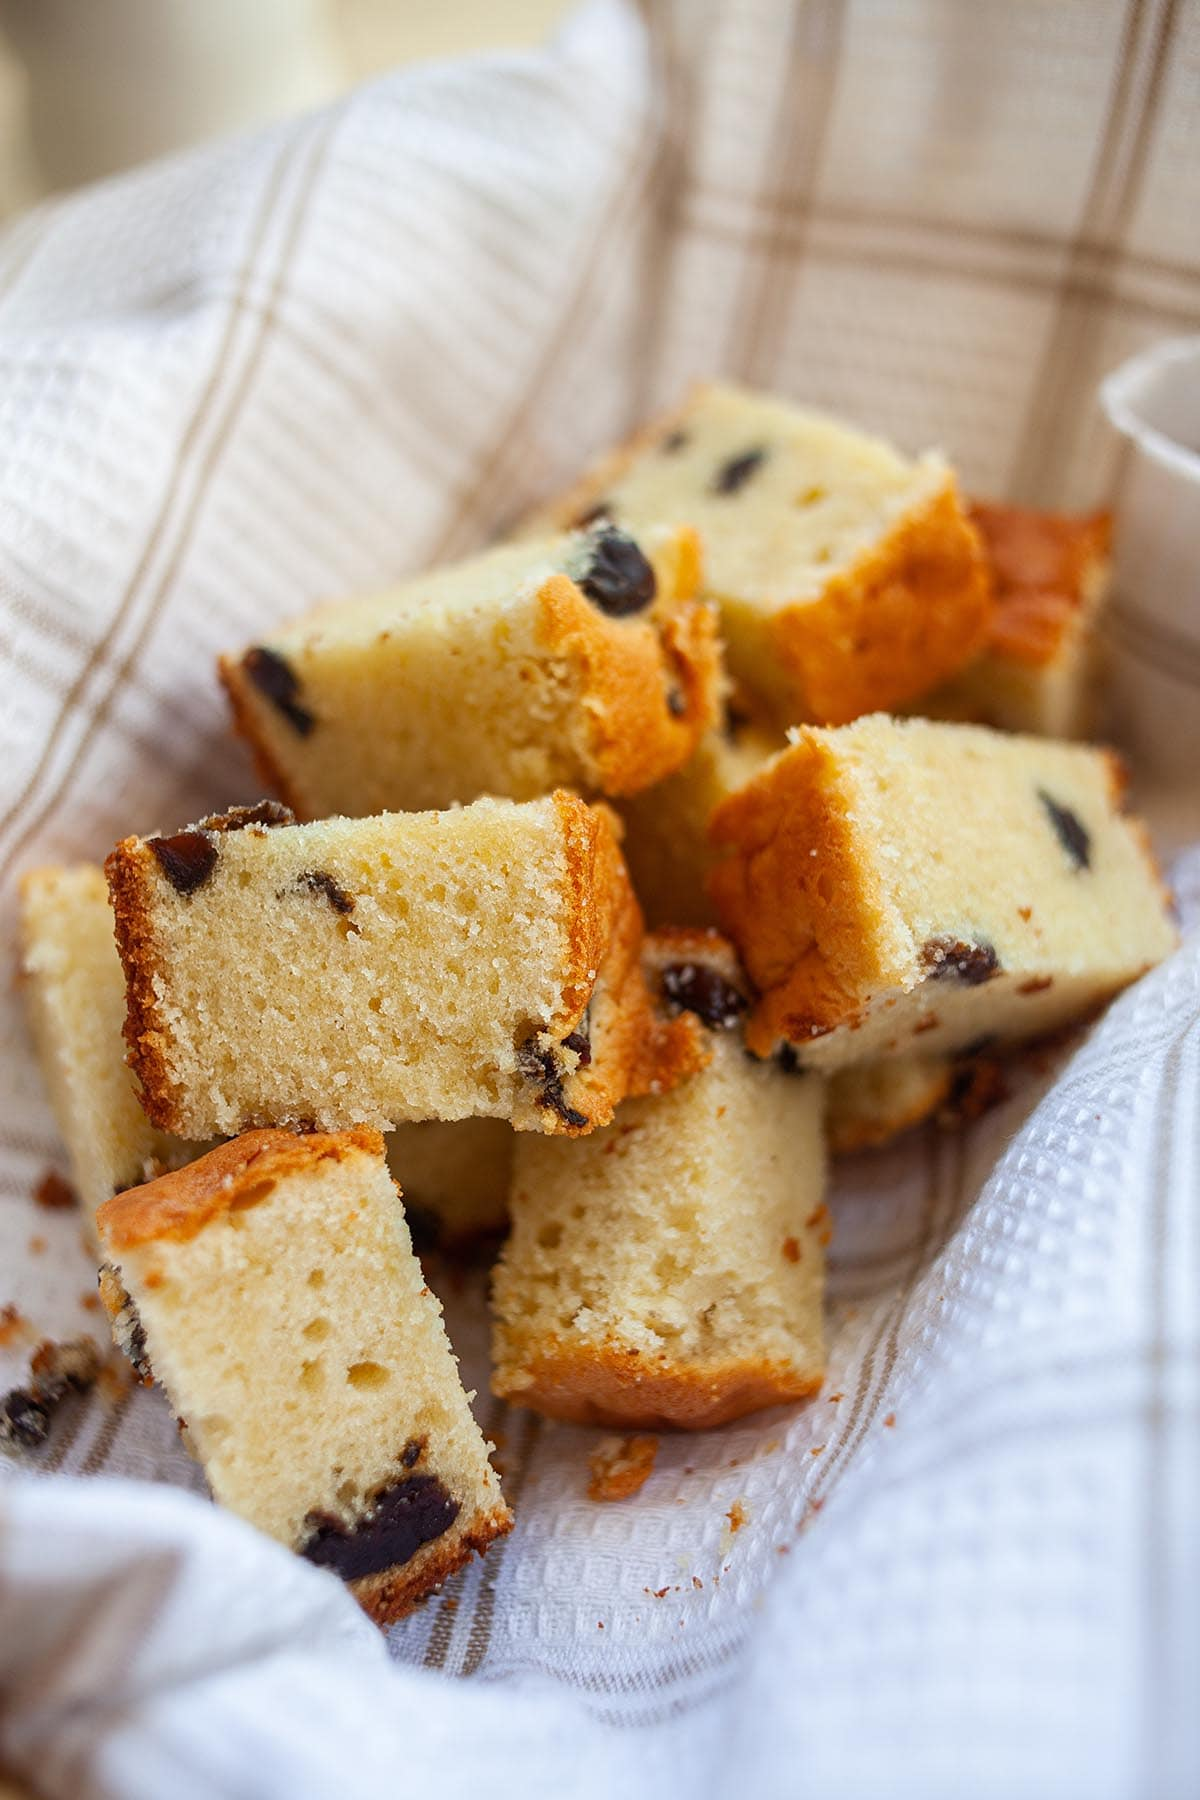 Easy and delicious brandy butter cake made with prunes, served in a basket.